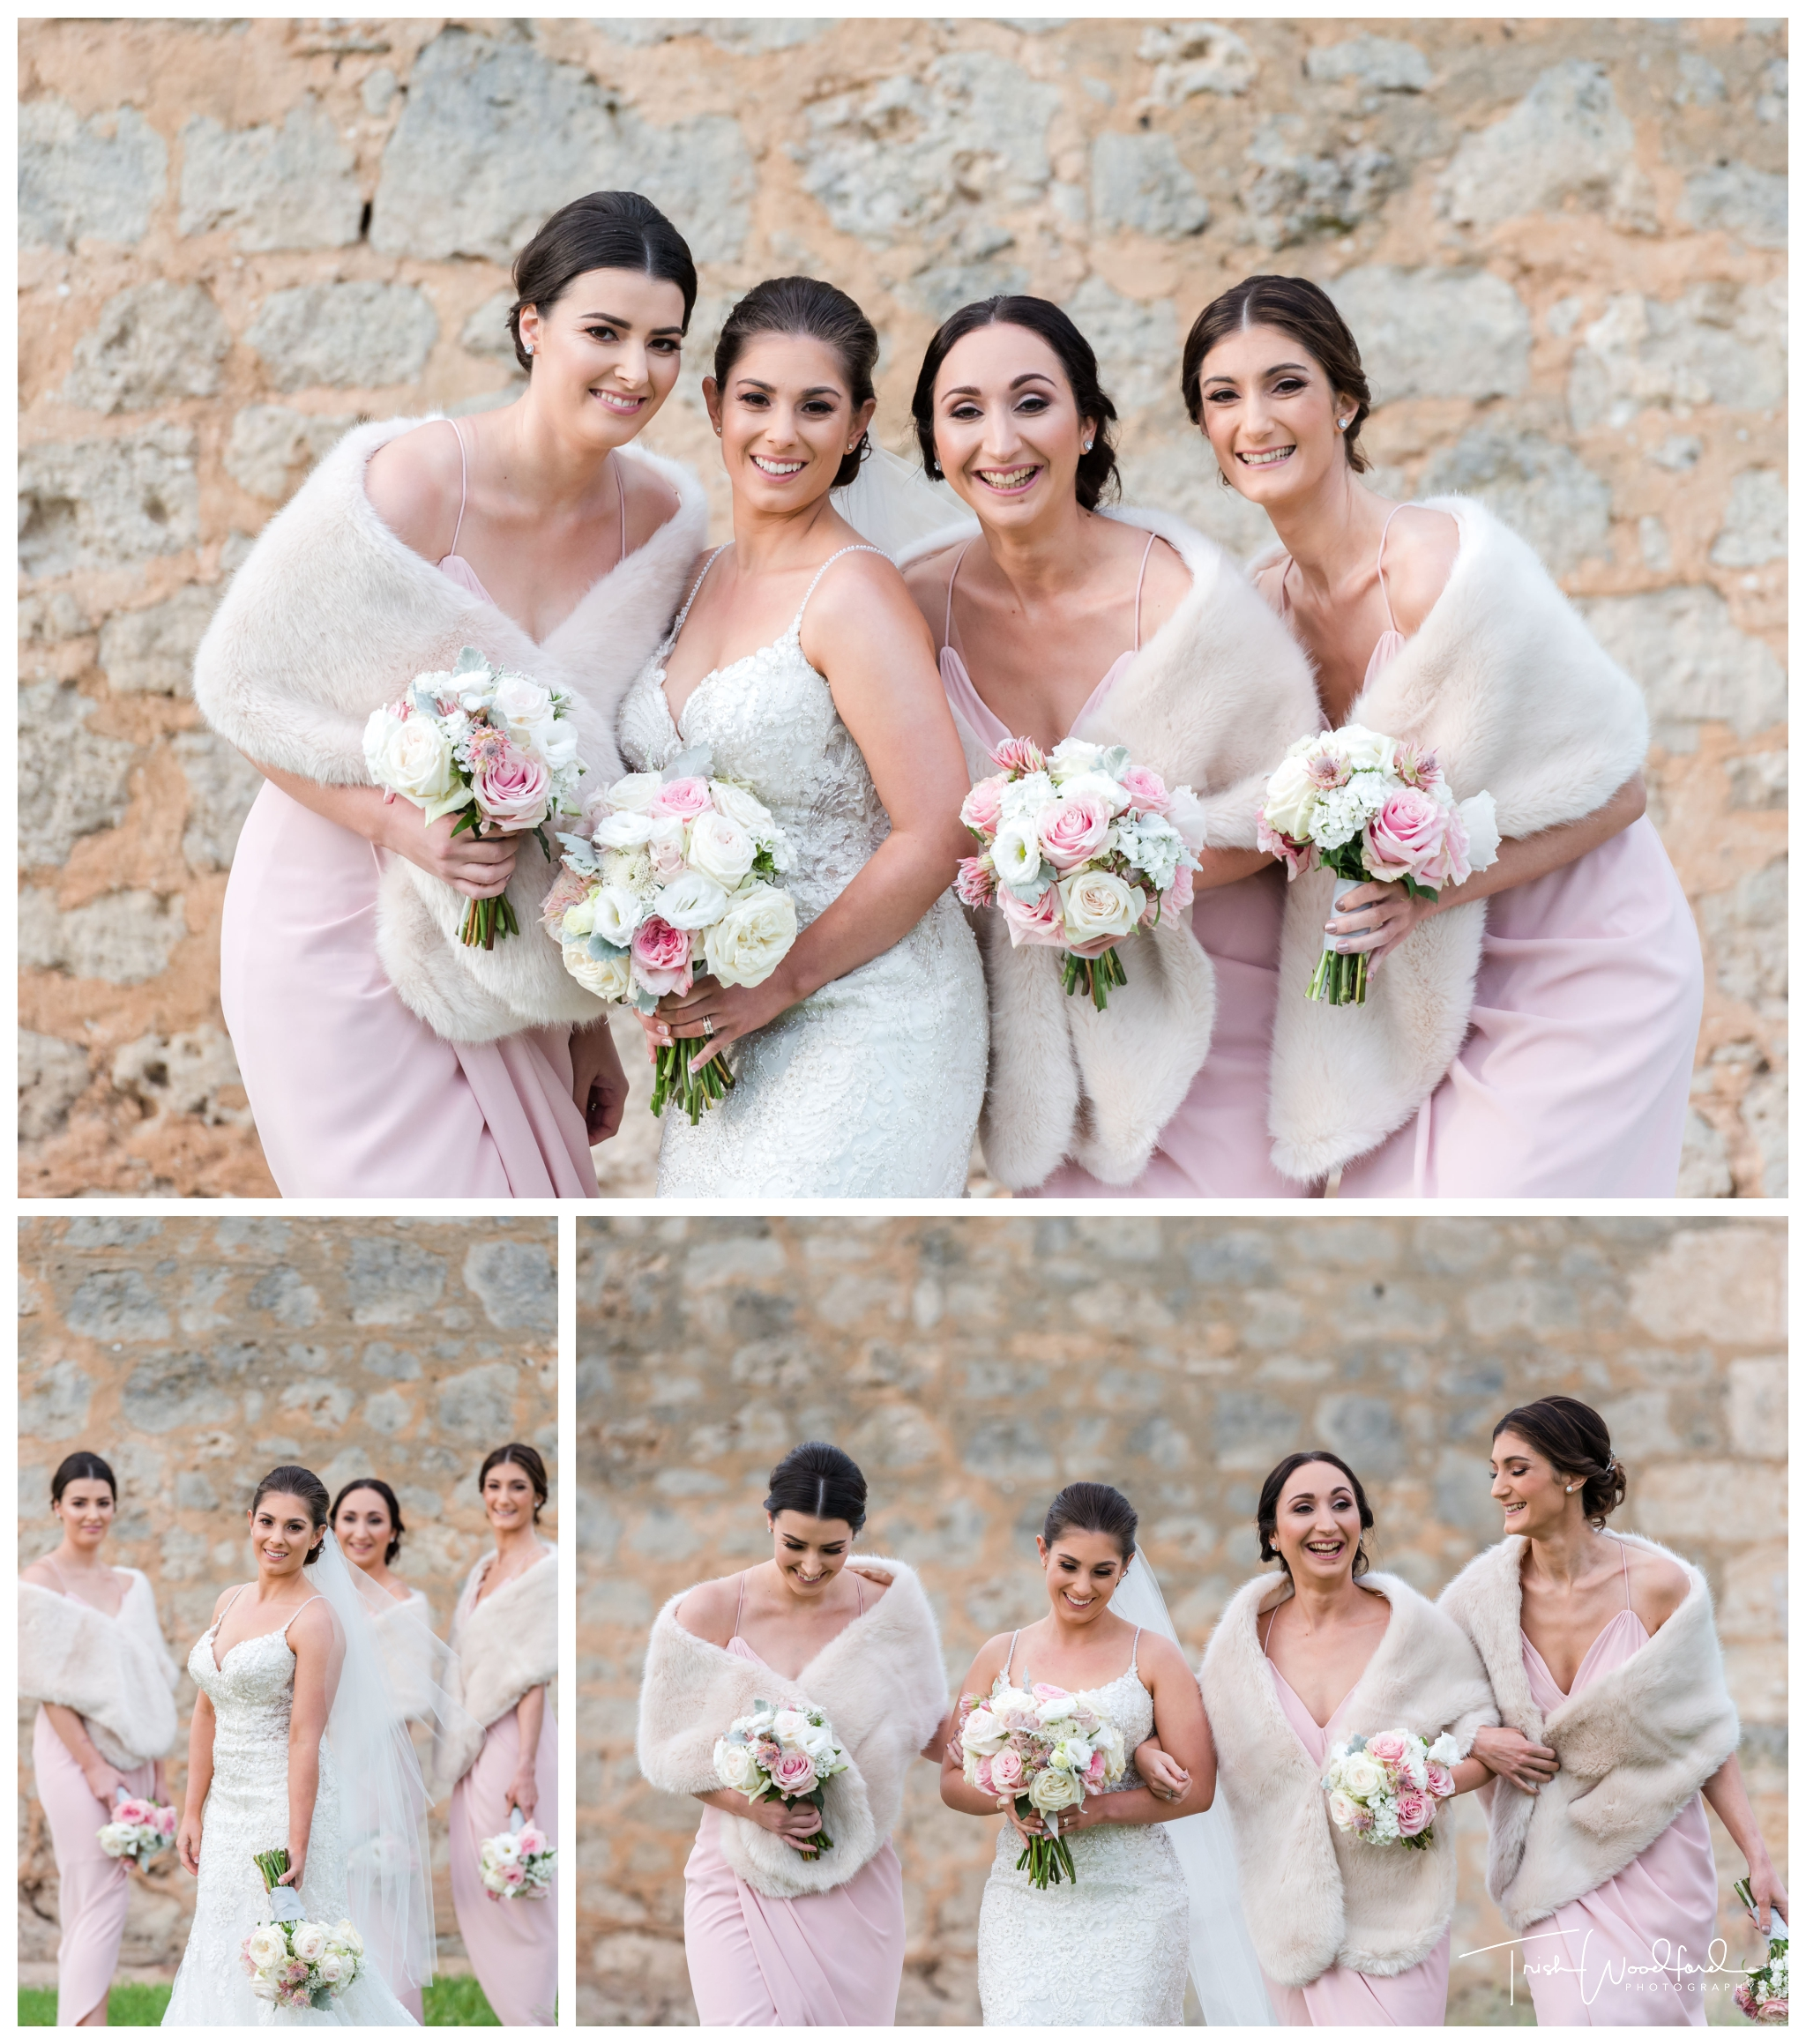 Bridesmaids Mandurah Wedding